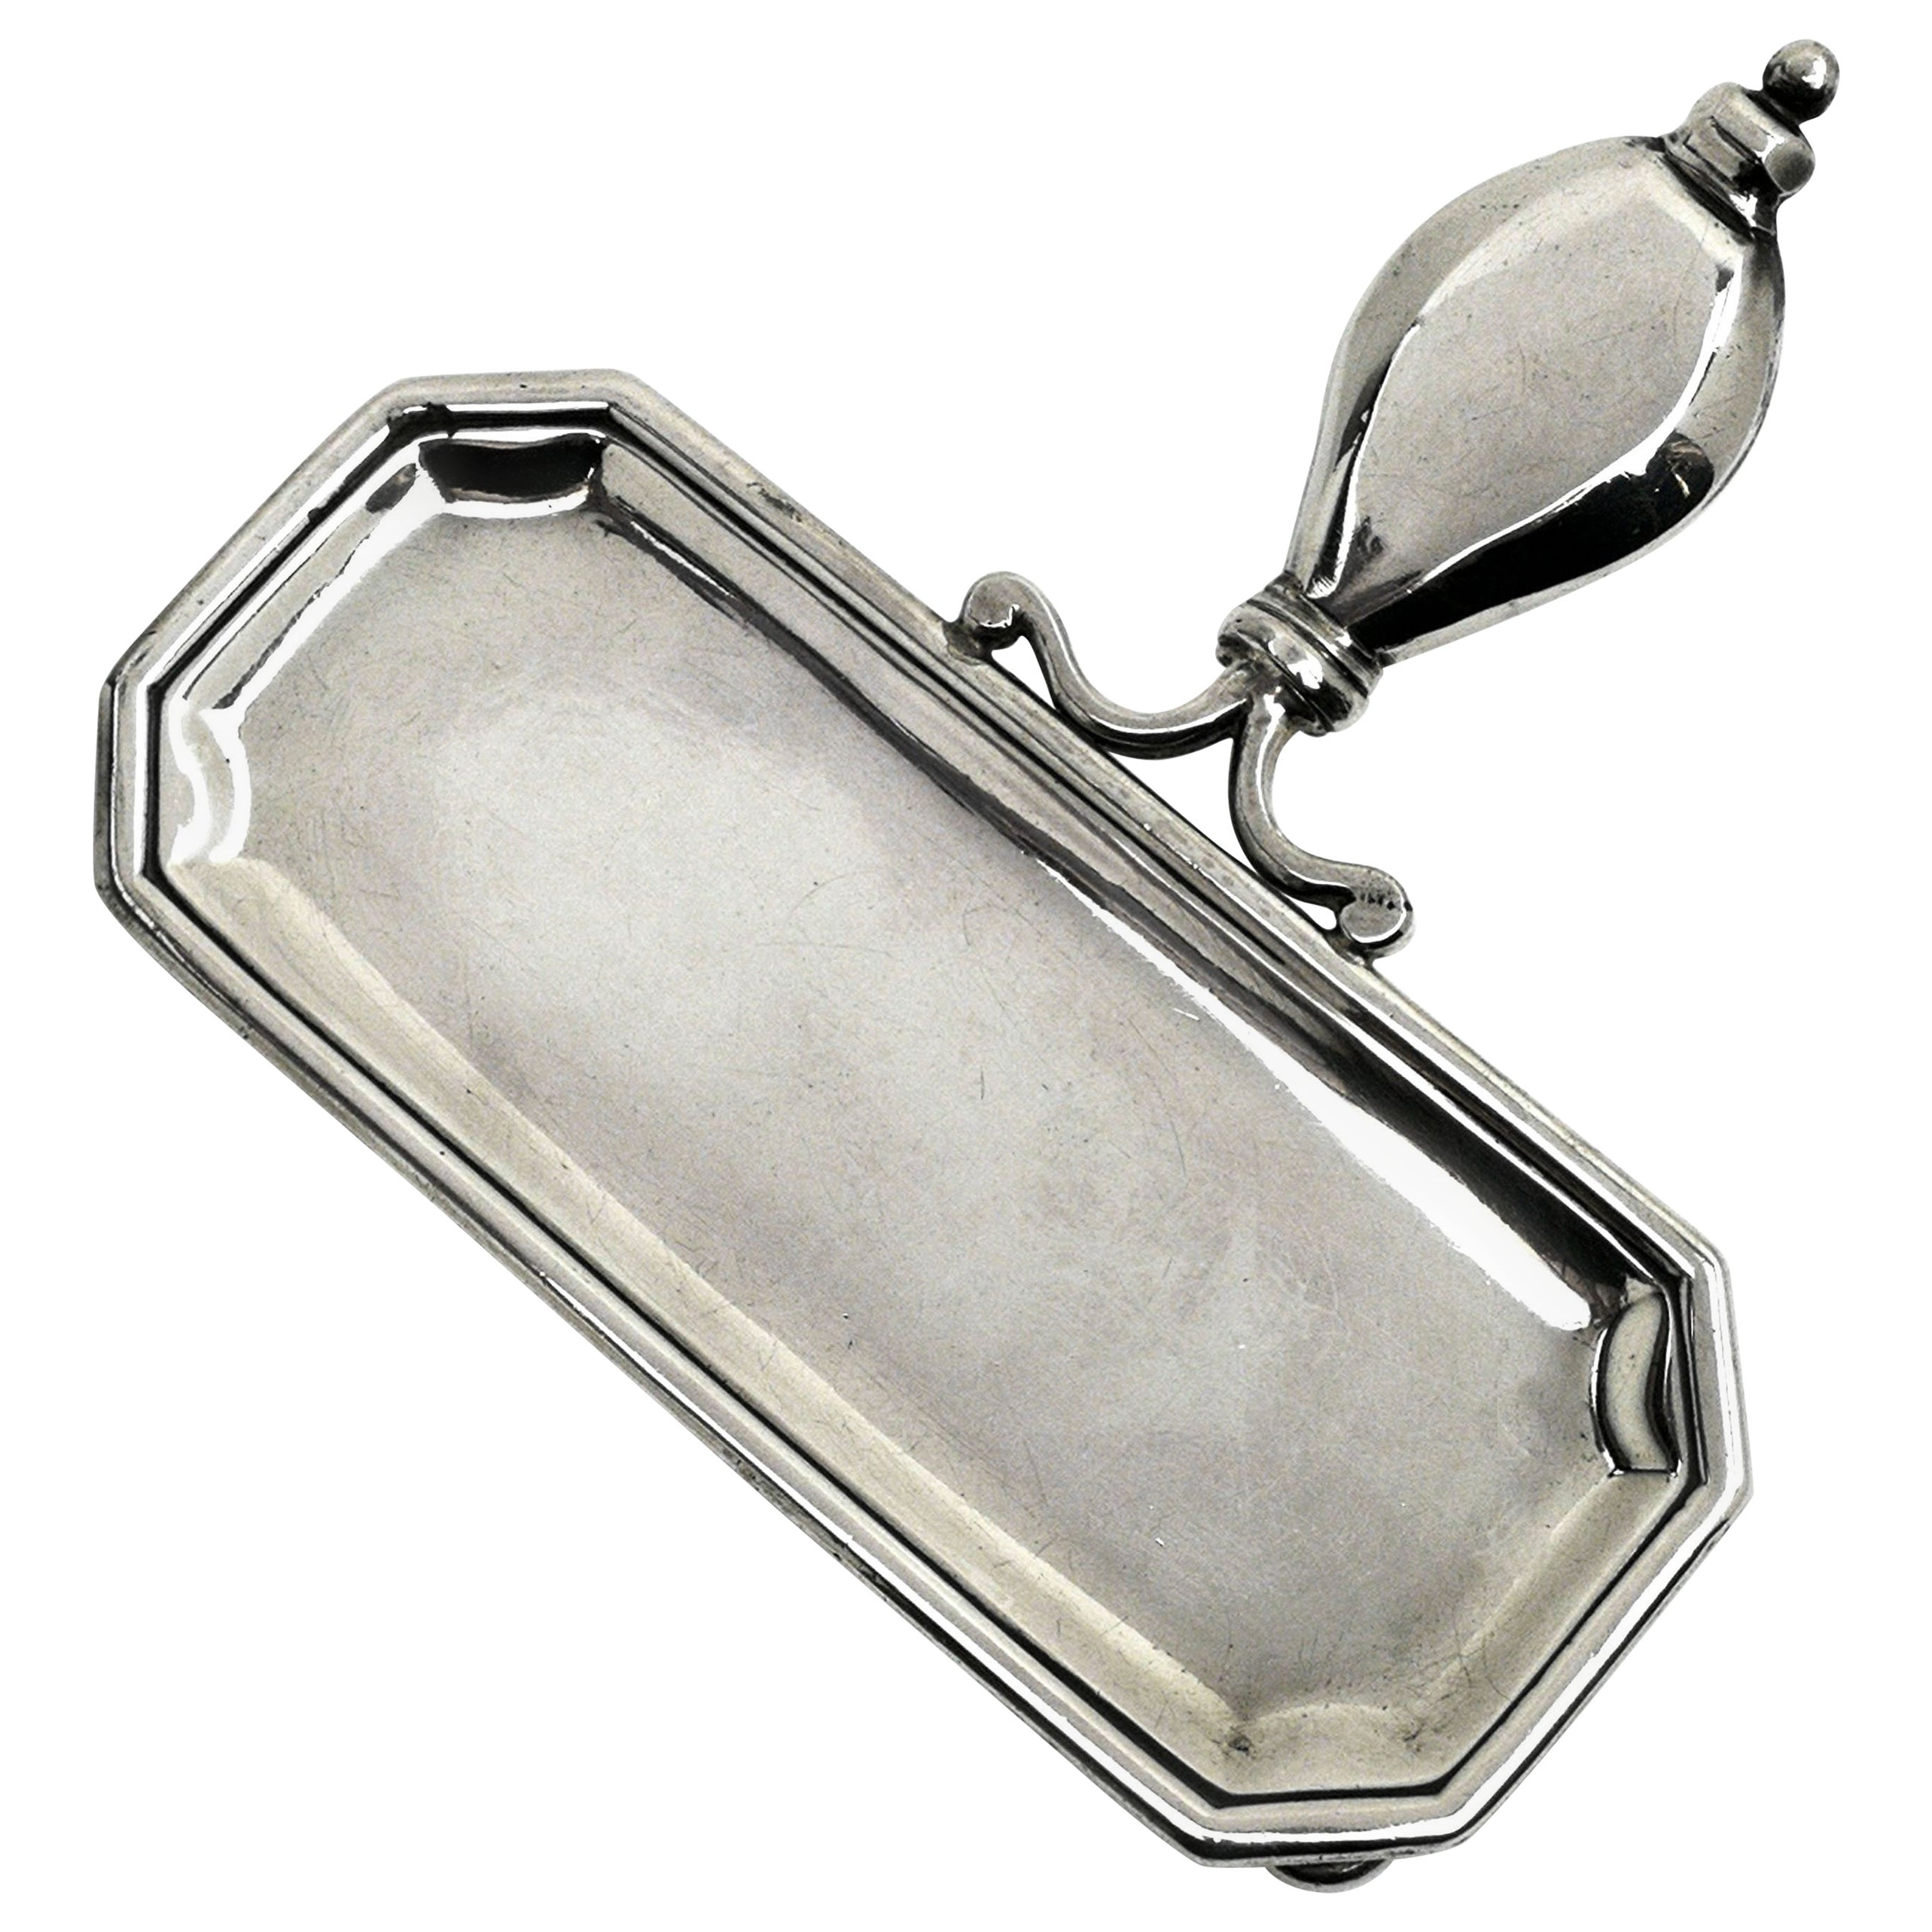 Antique George I Sterling Silver Snuffer Tray 1721 Georgian Trinket Pin Tray